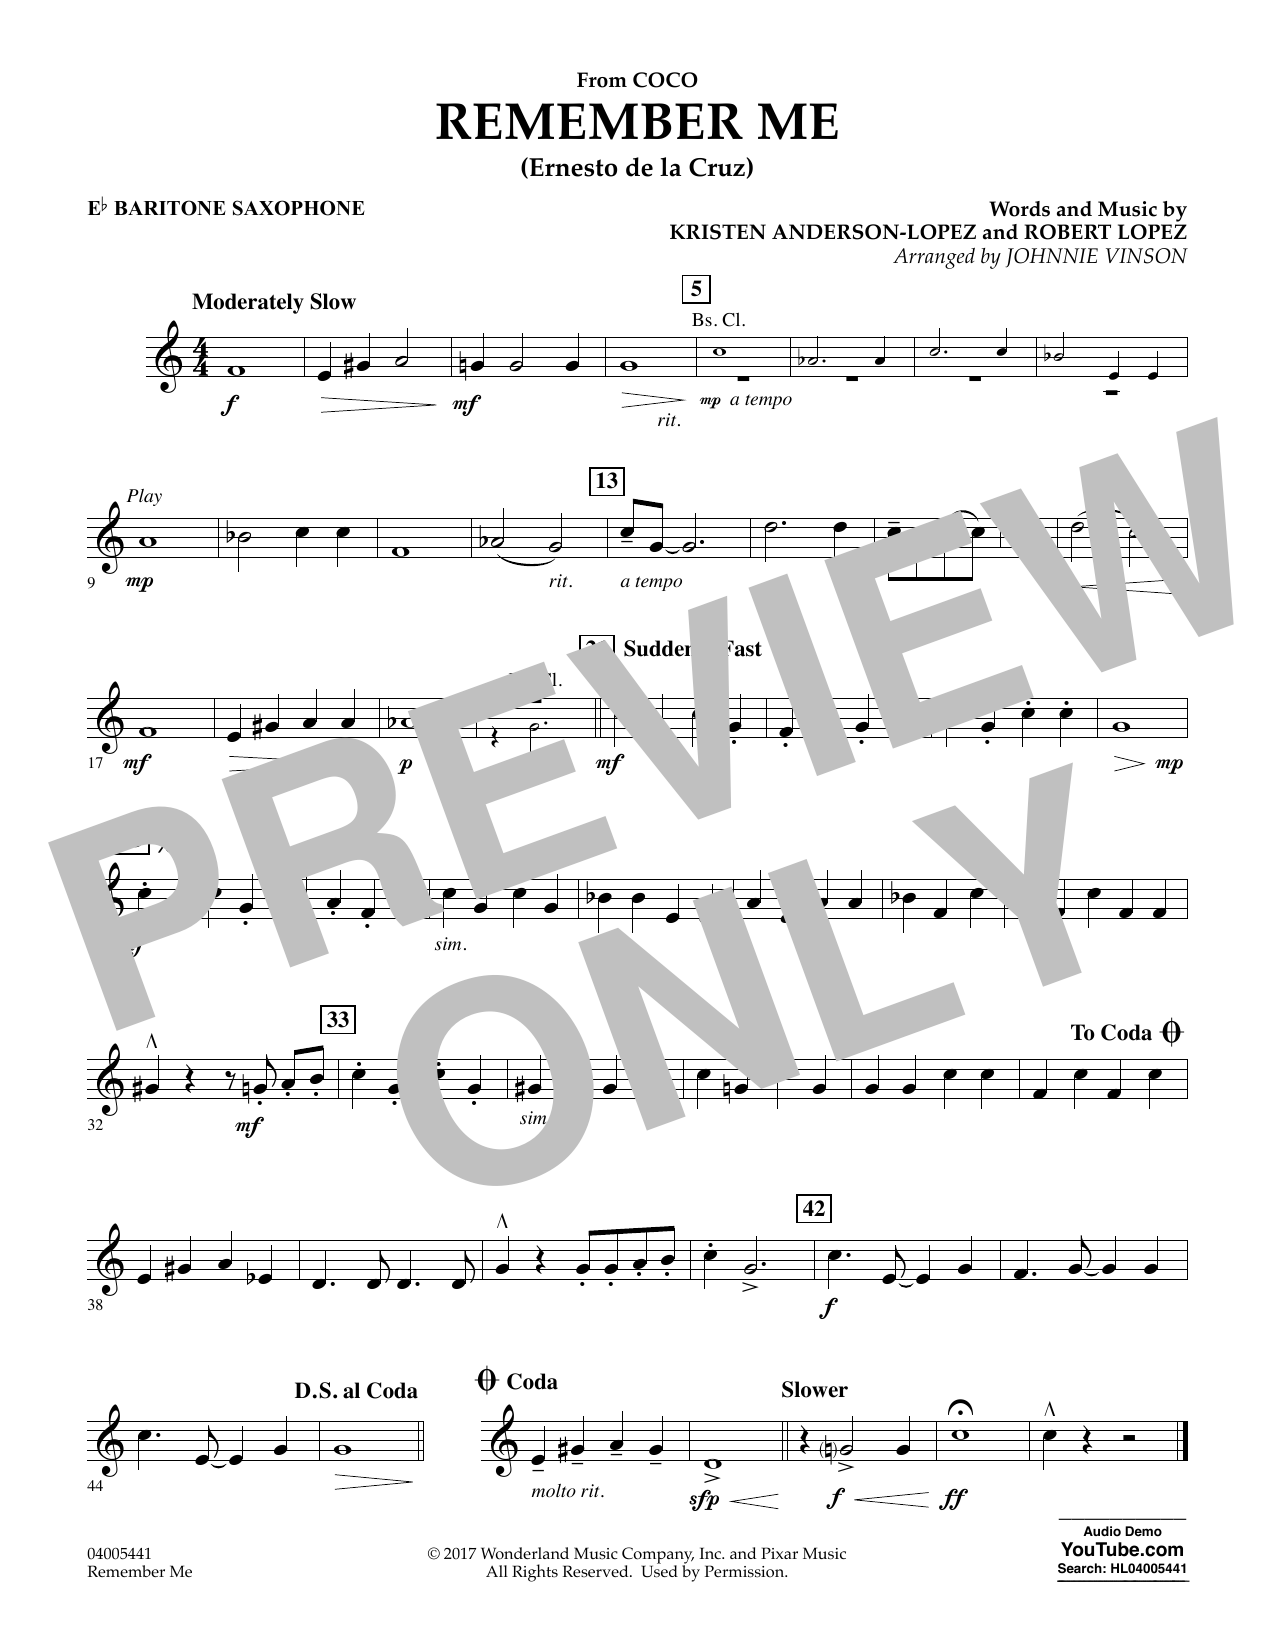 Kristen Anderson-Lopez & Robert Lopez Remember Me (from Coco) (arr. Johnnie Vinson) - Eb Baritone Saxophone sheet music notes and chords. Download Printable PDF.